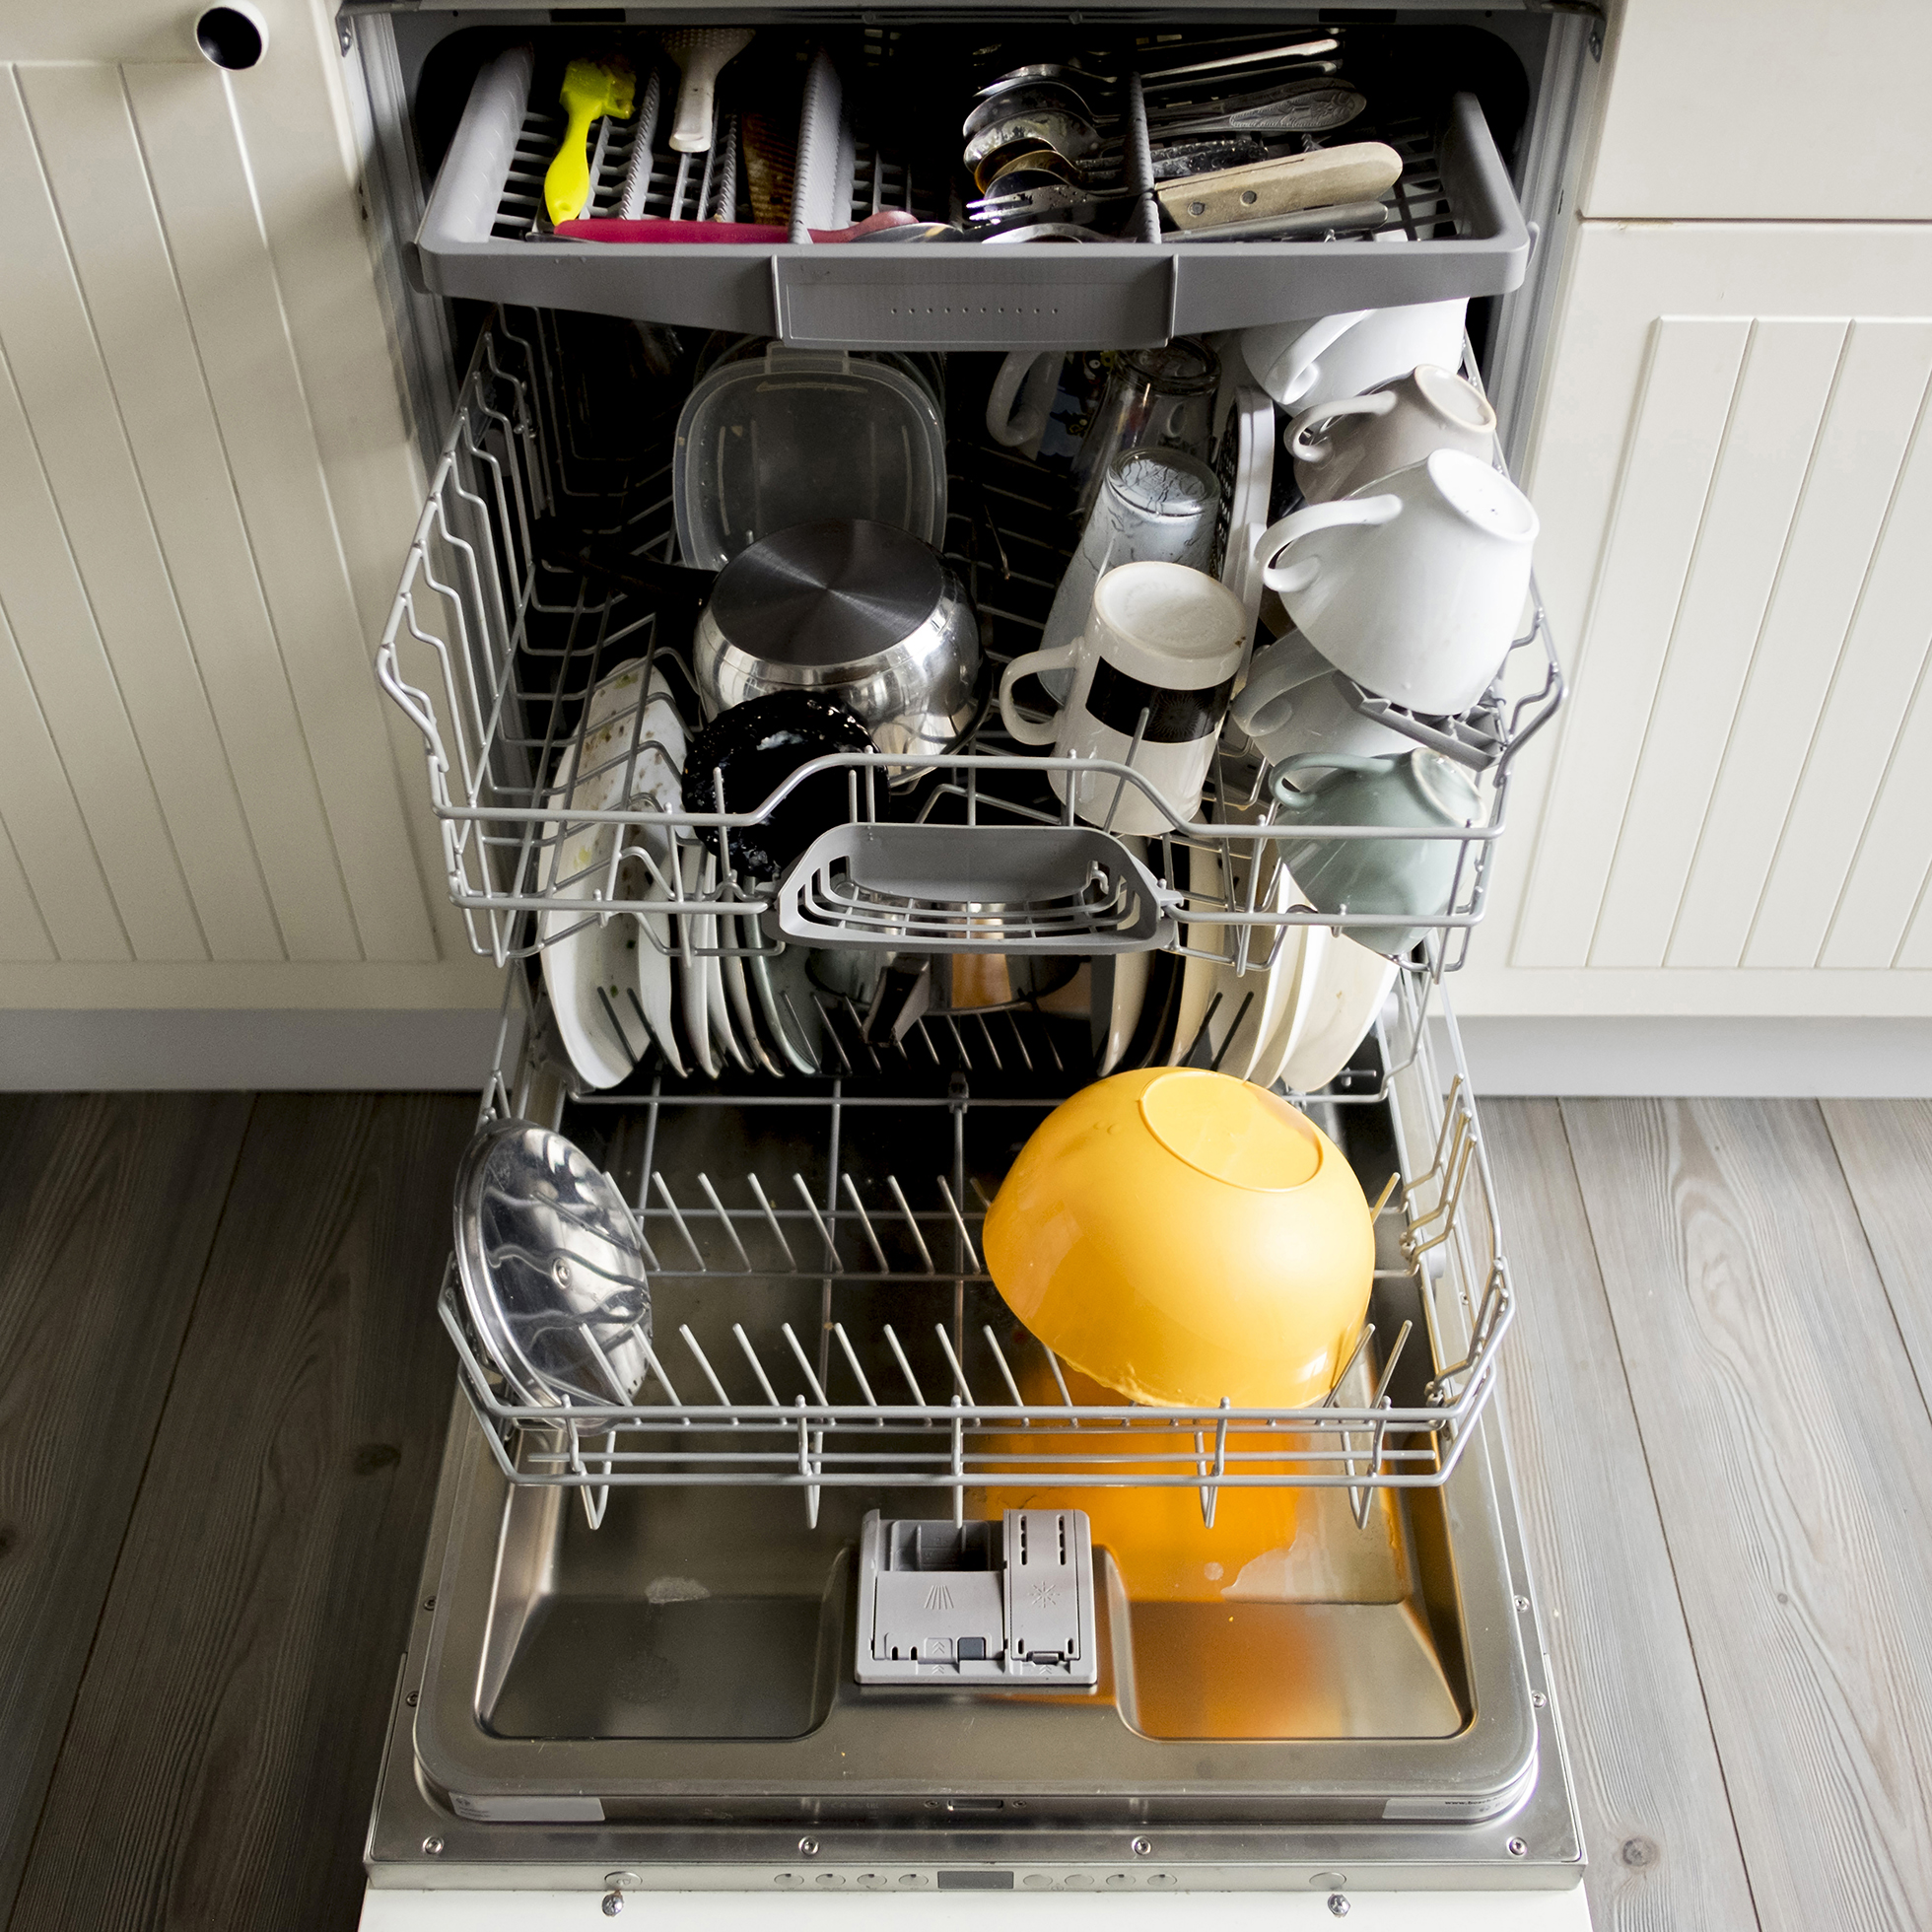 High angle view of dishes and utensils in dishwasher